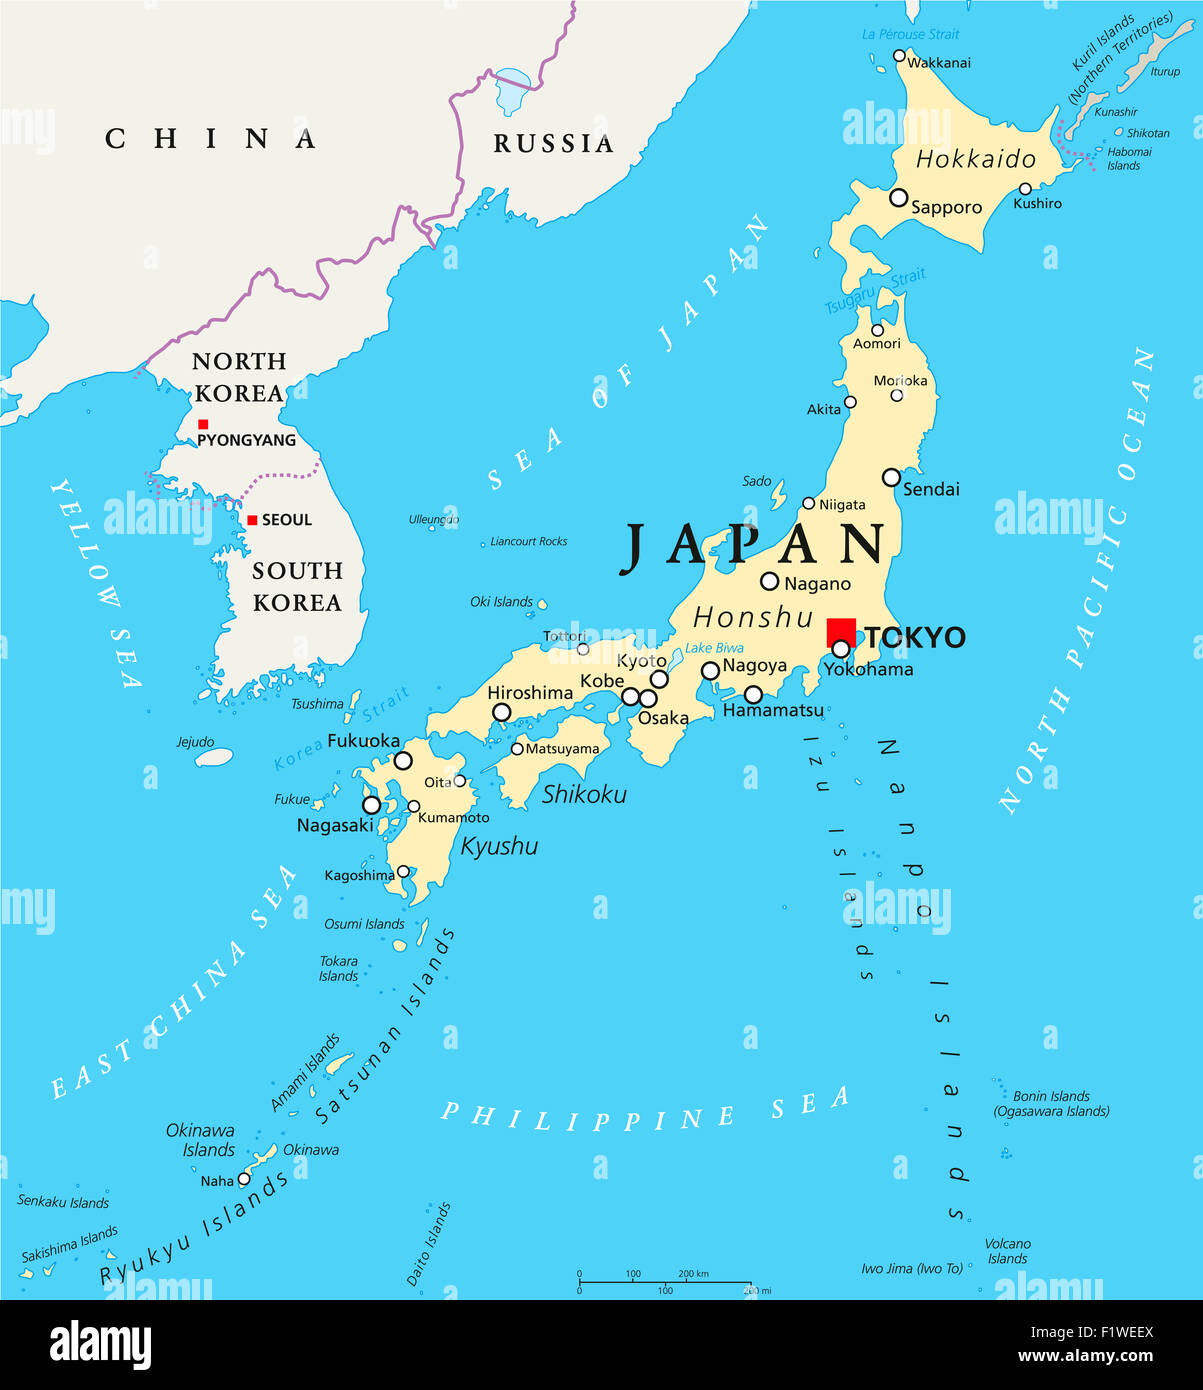 tokyo on japan map Japan Political Map With Capital Tokyo National Borders And Stock